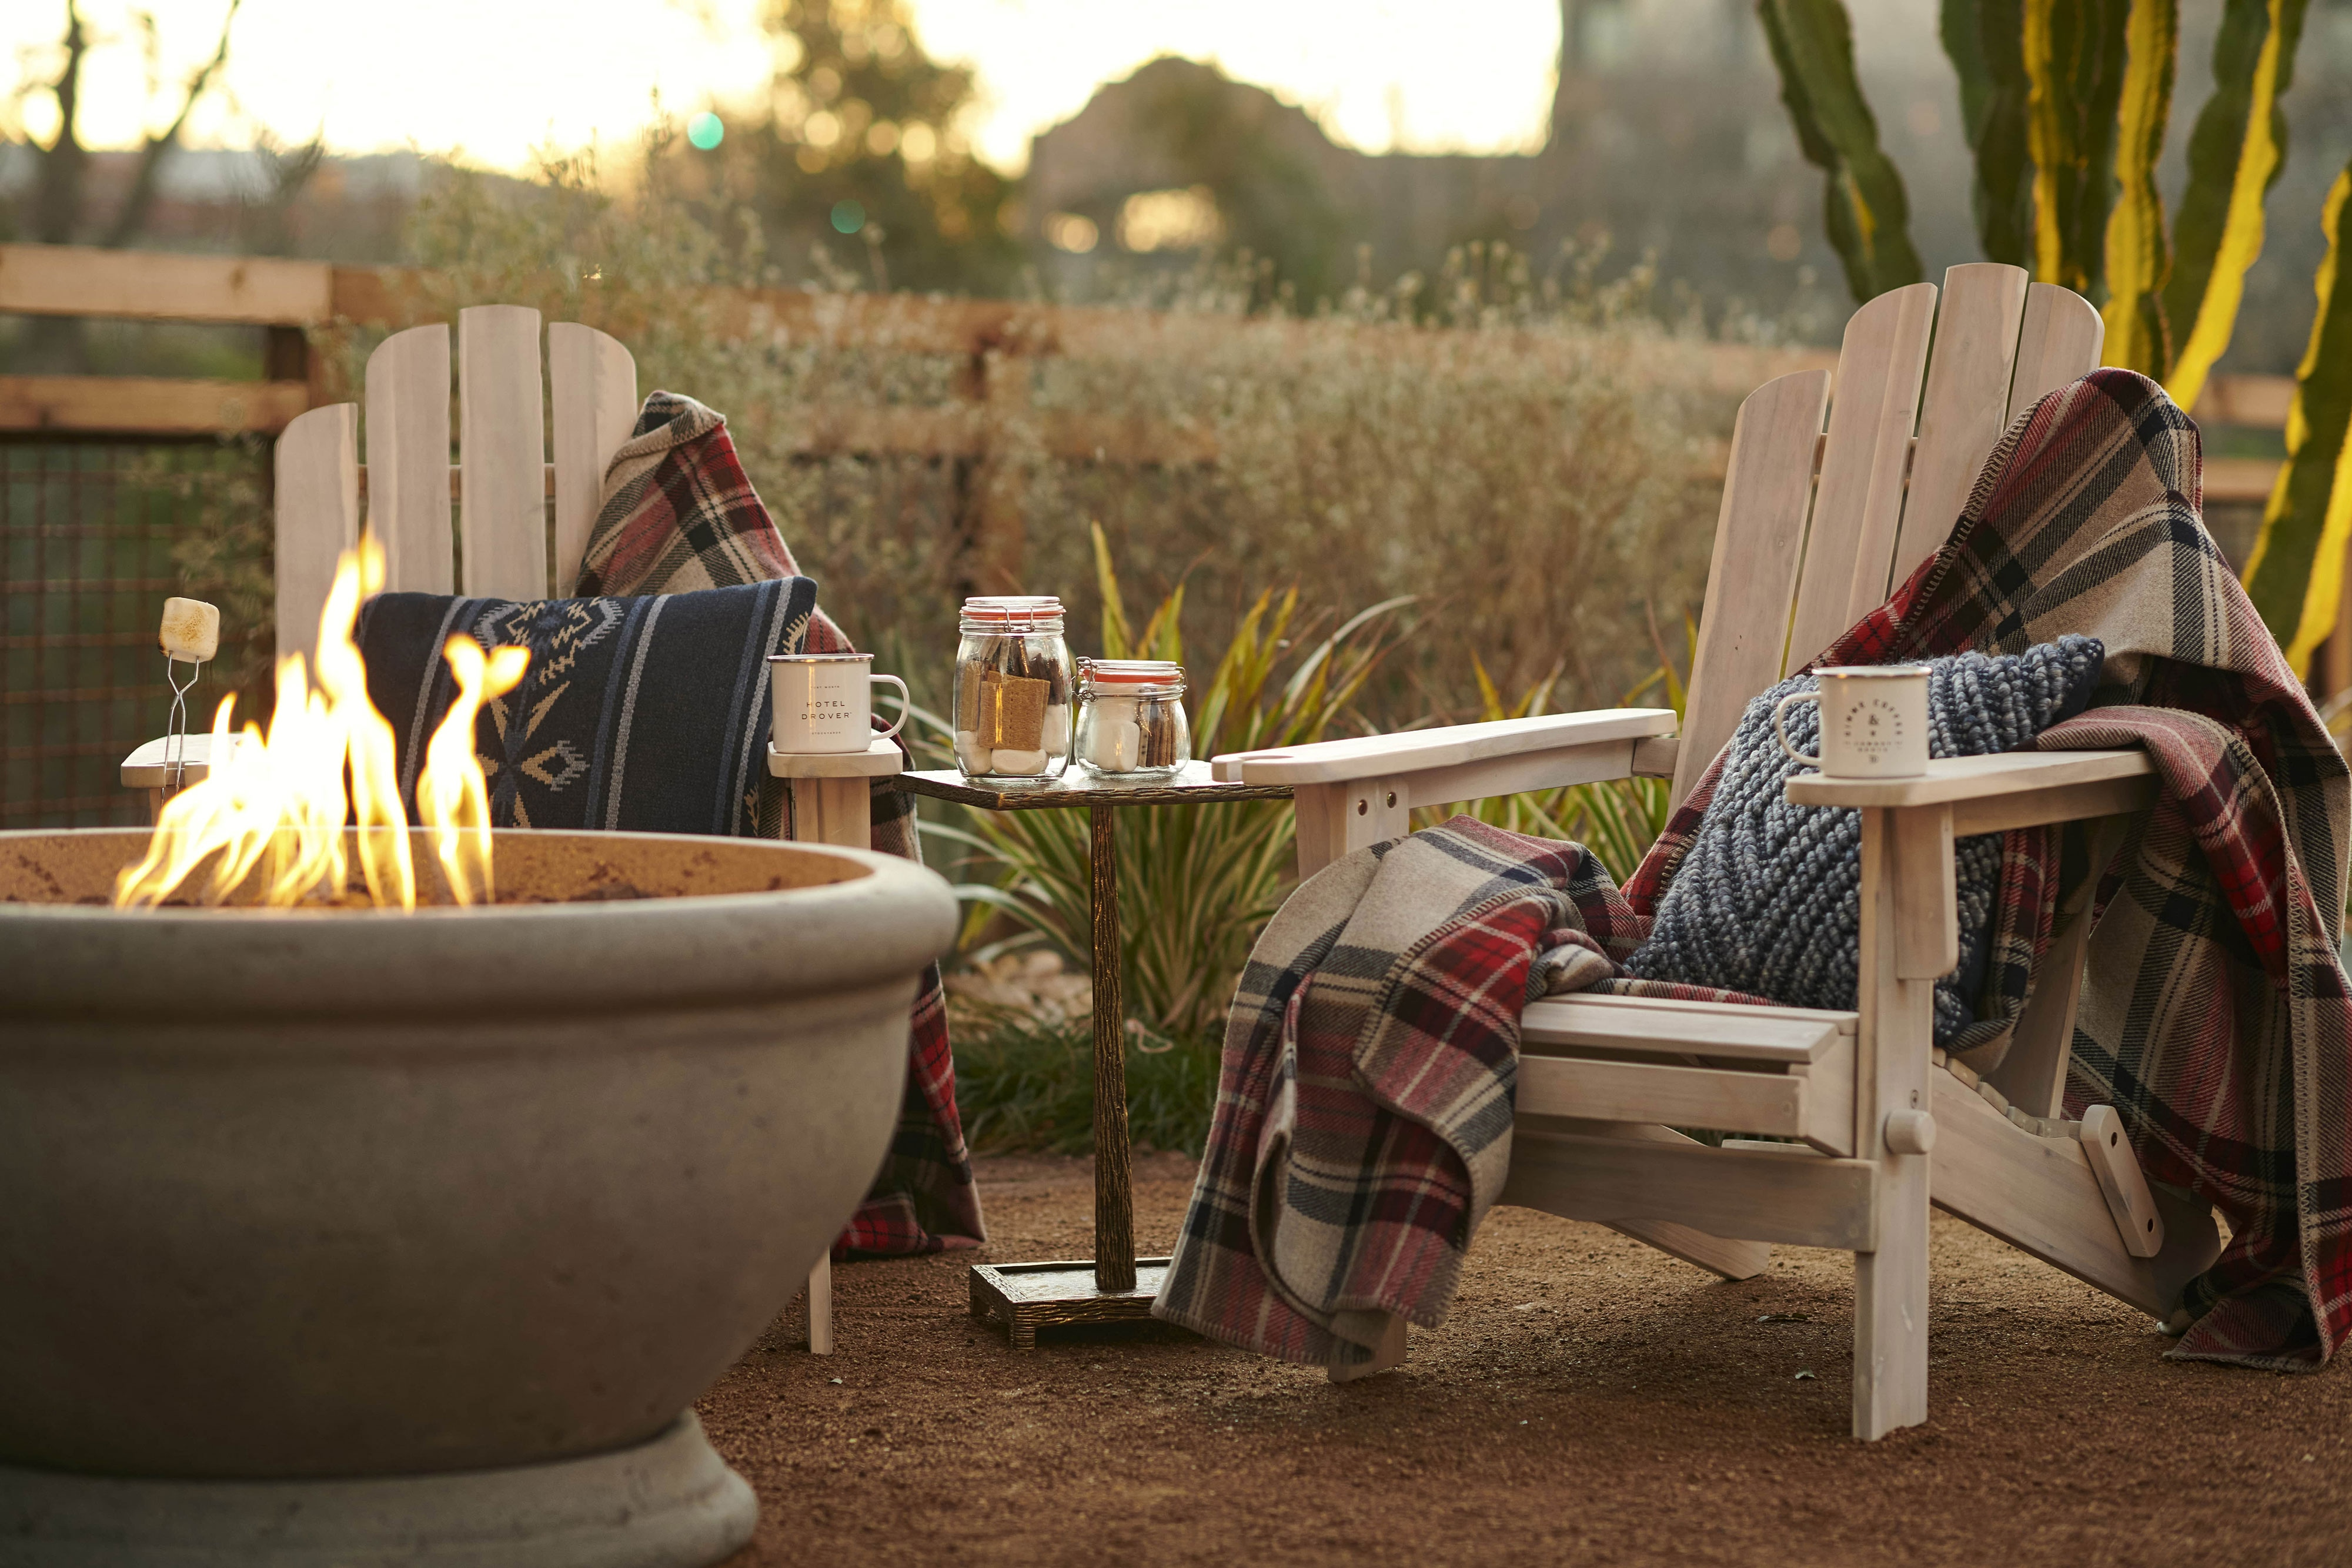 Hotel Drover Fire Pit